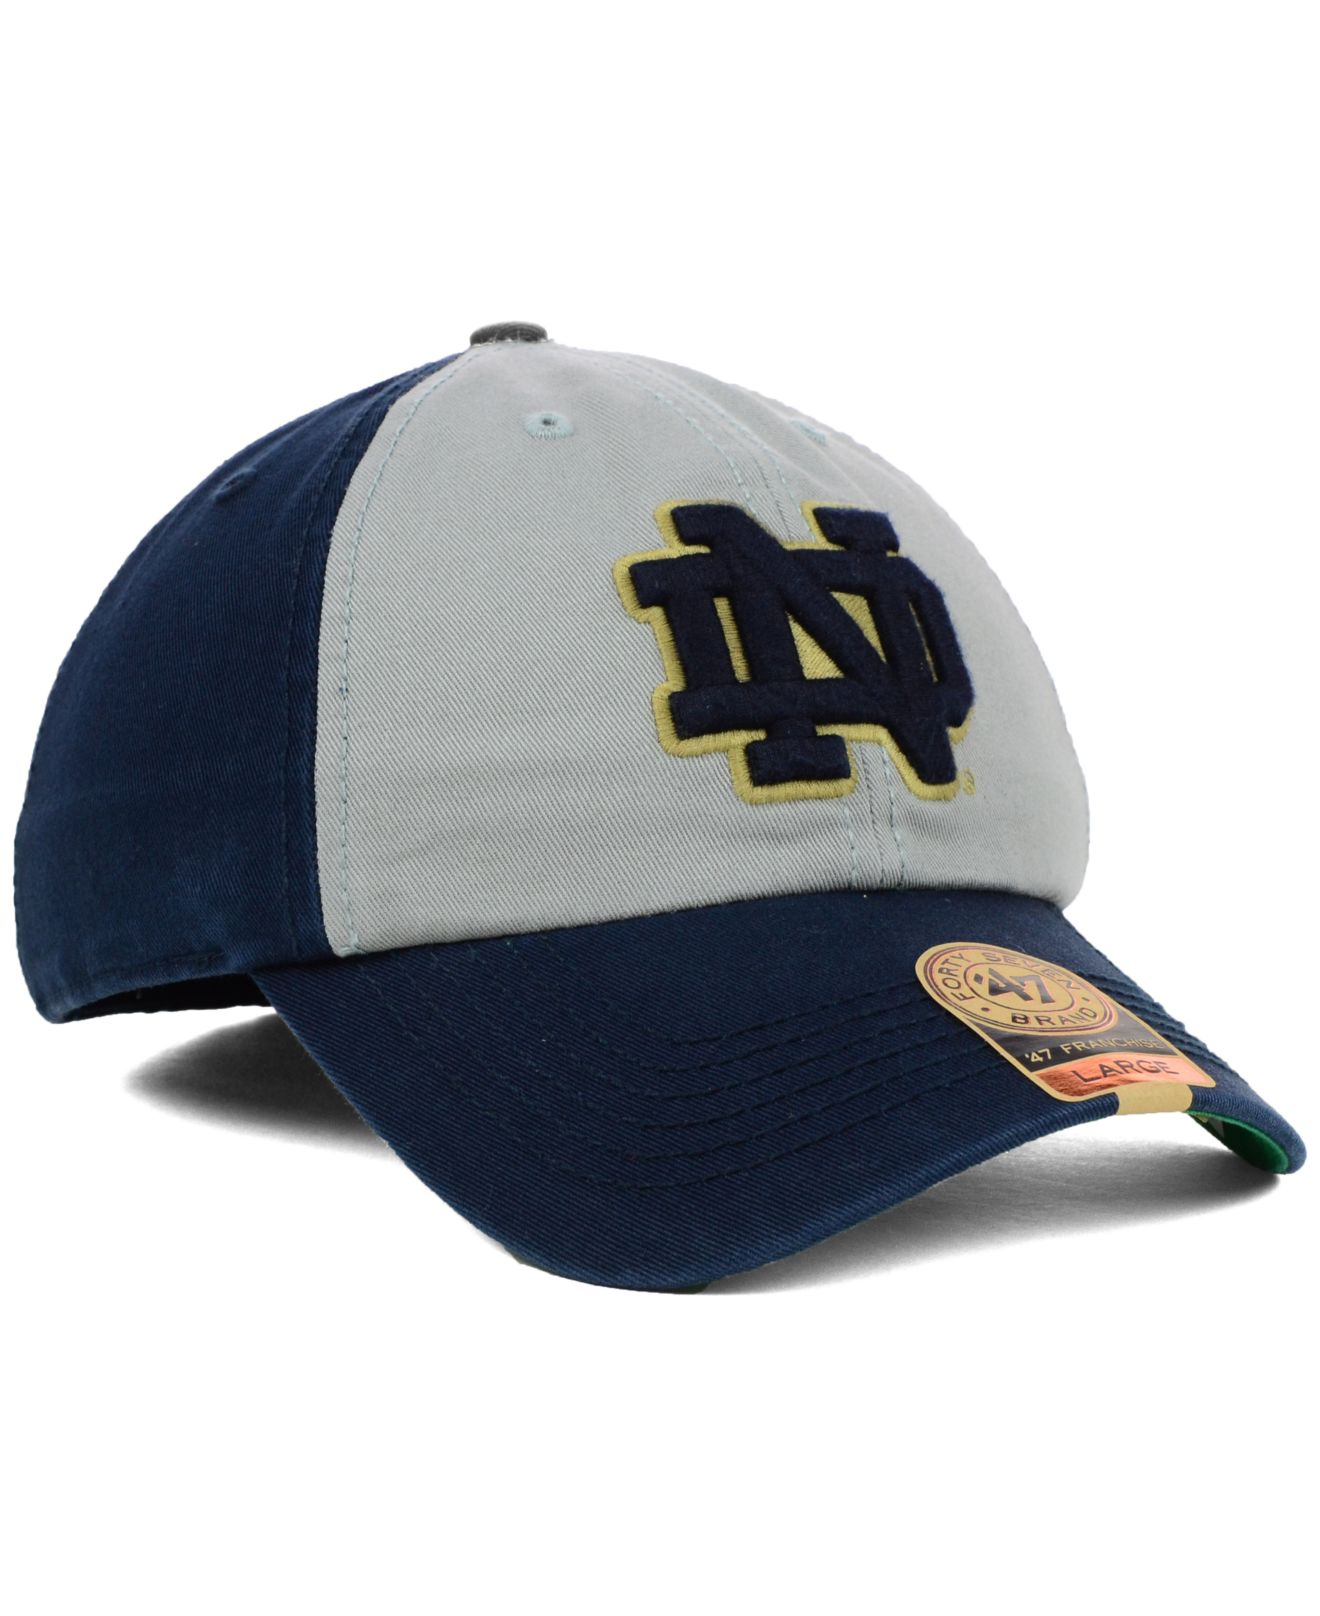 the best attitude 4f8a1 b124b Lyst - 47 Brand Notre Dame Fighting Irish Vip Franchise Cap in Blue ...